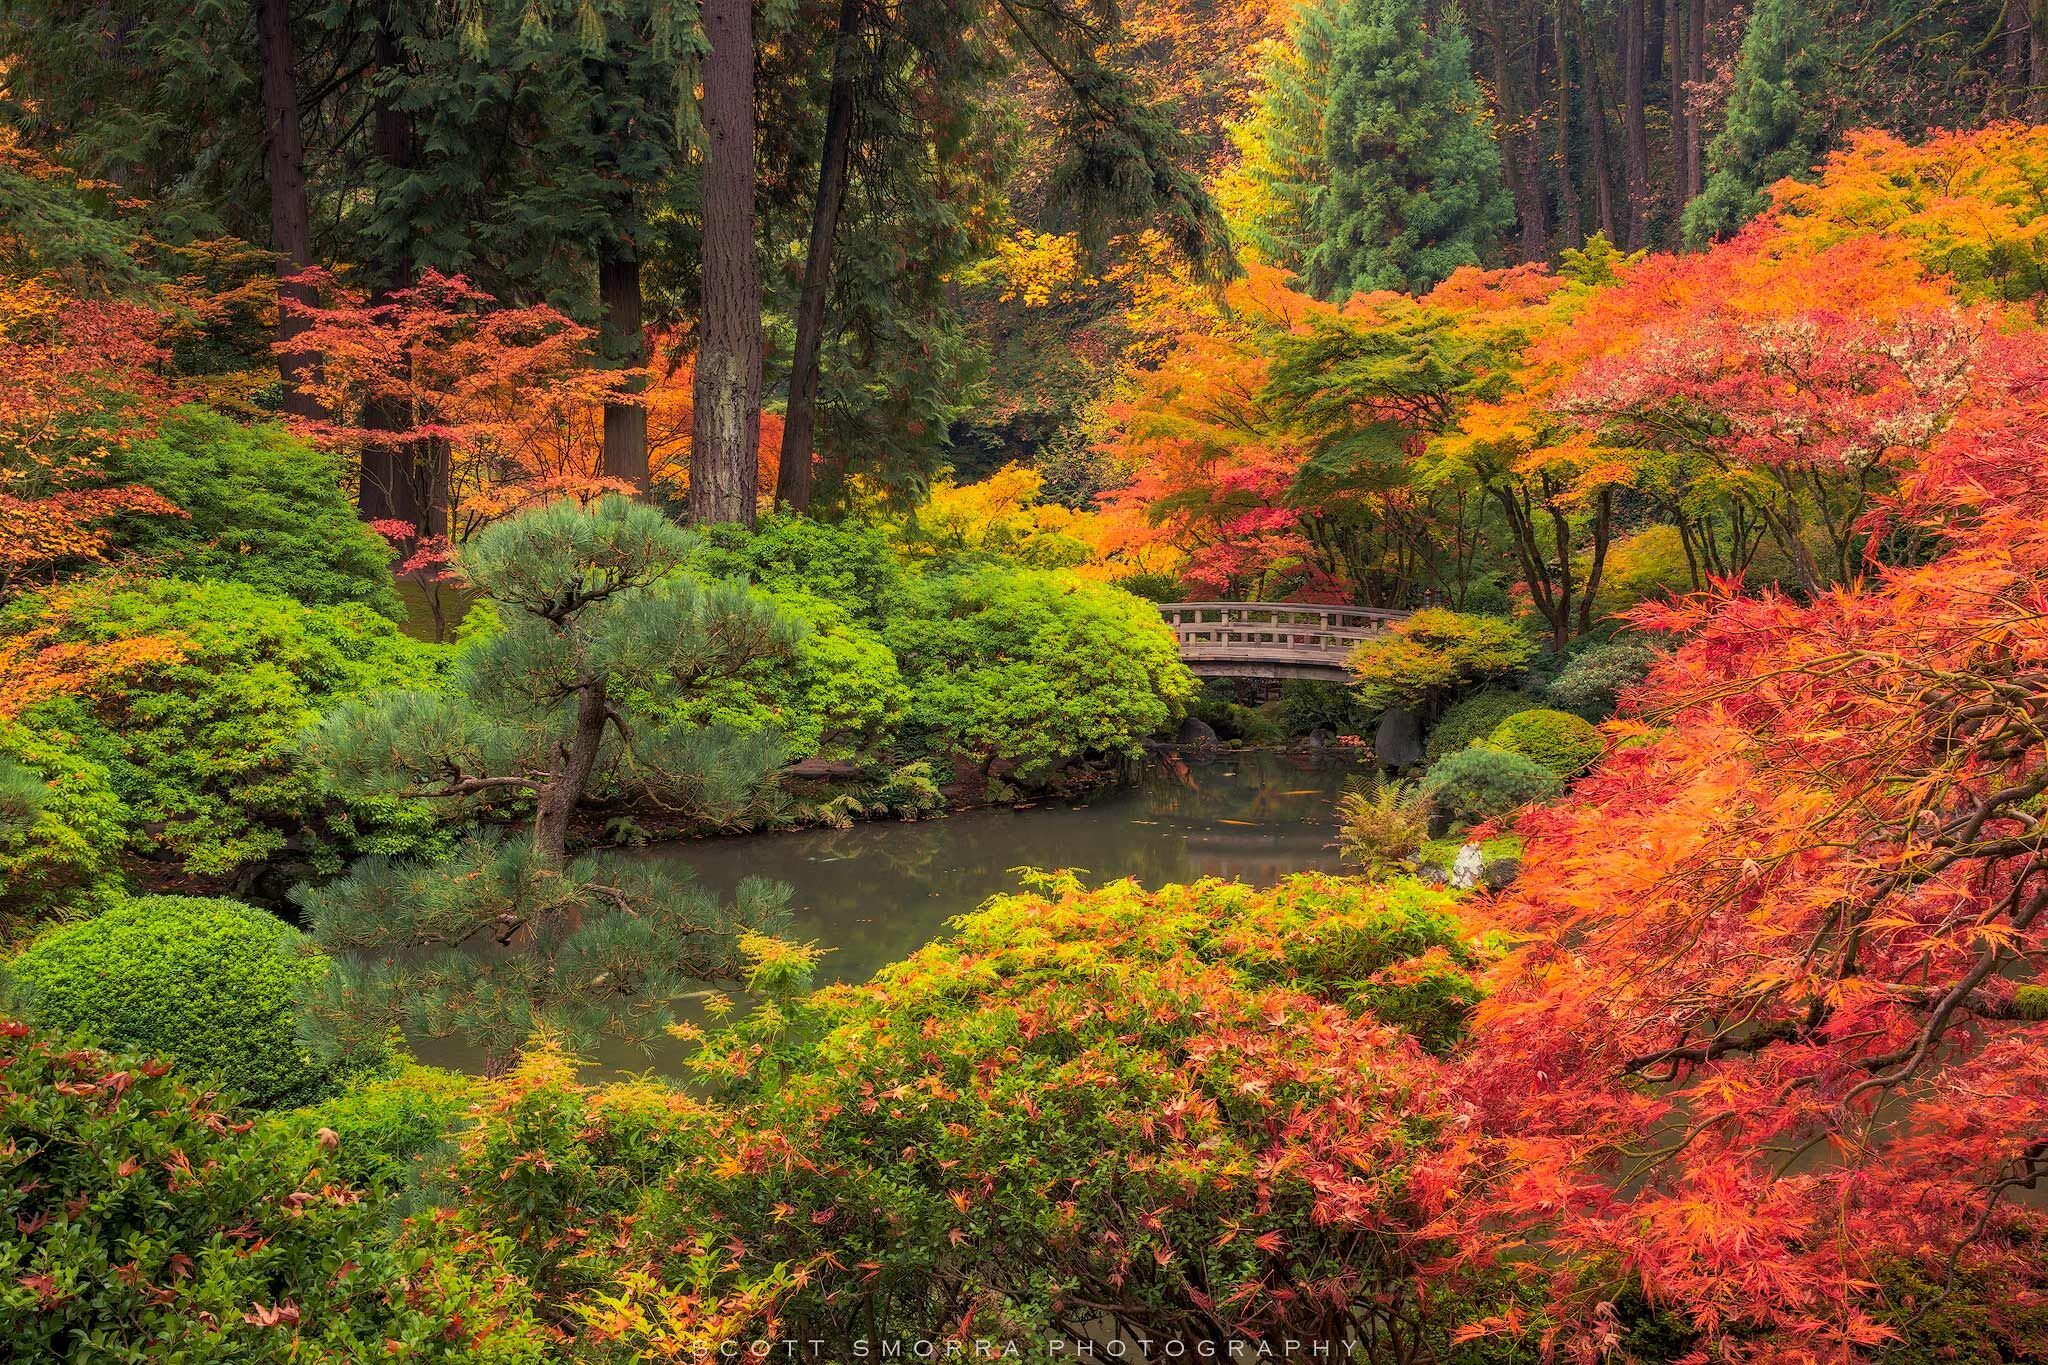 Fine Art Limited Edition of 100 - Peak fall colors surround the garden bridge on a quiet morning at the Portland Japanese Garden...